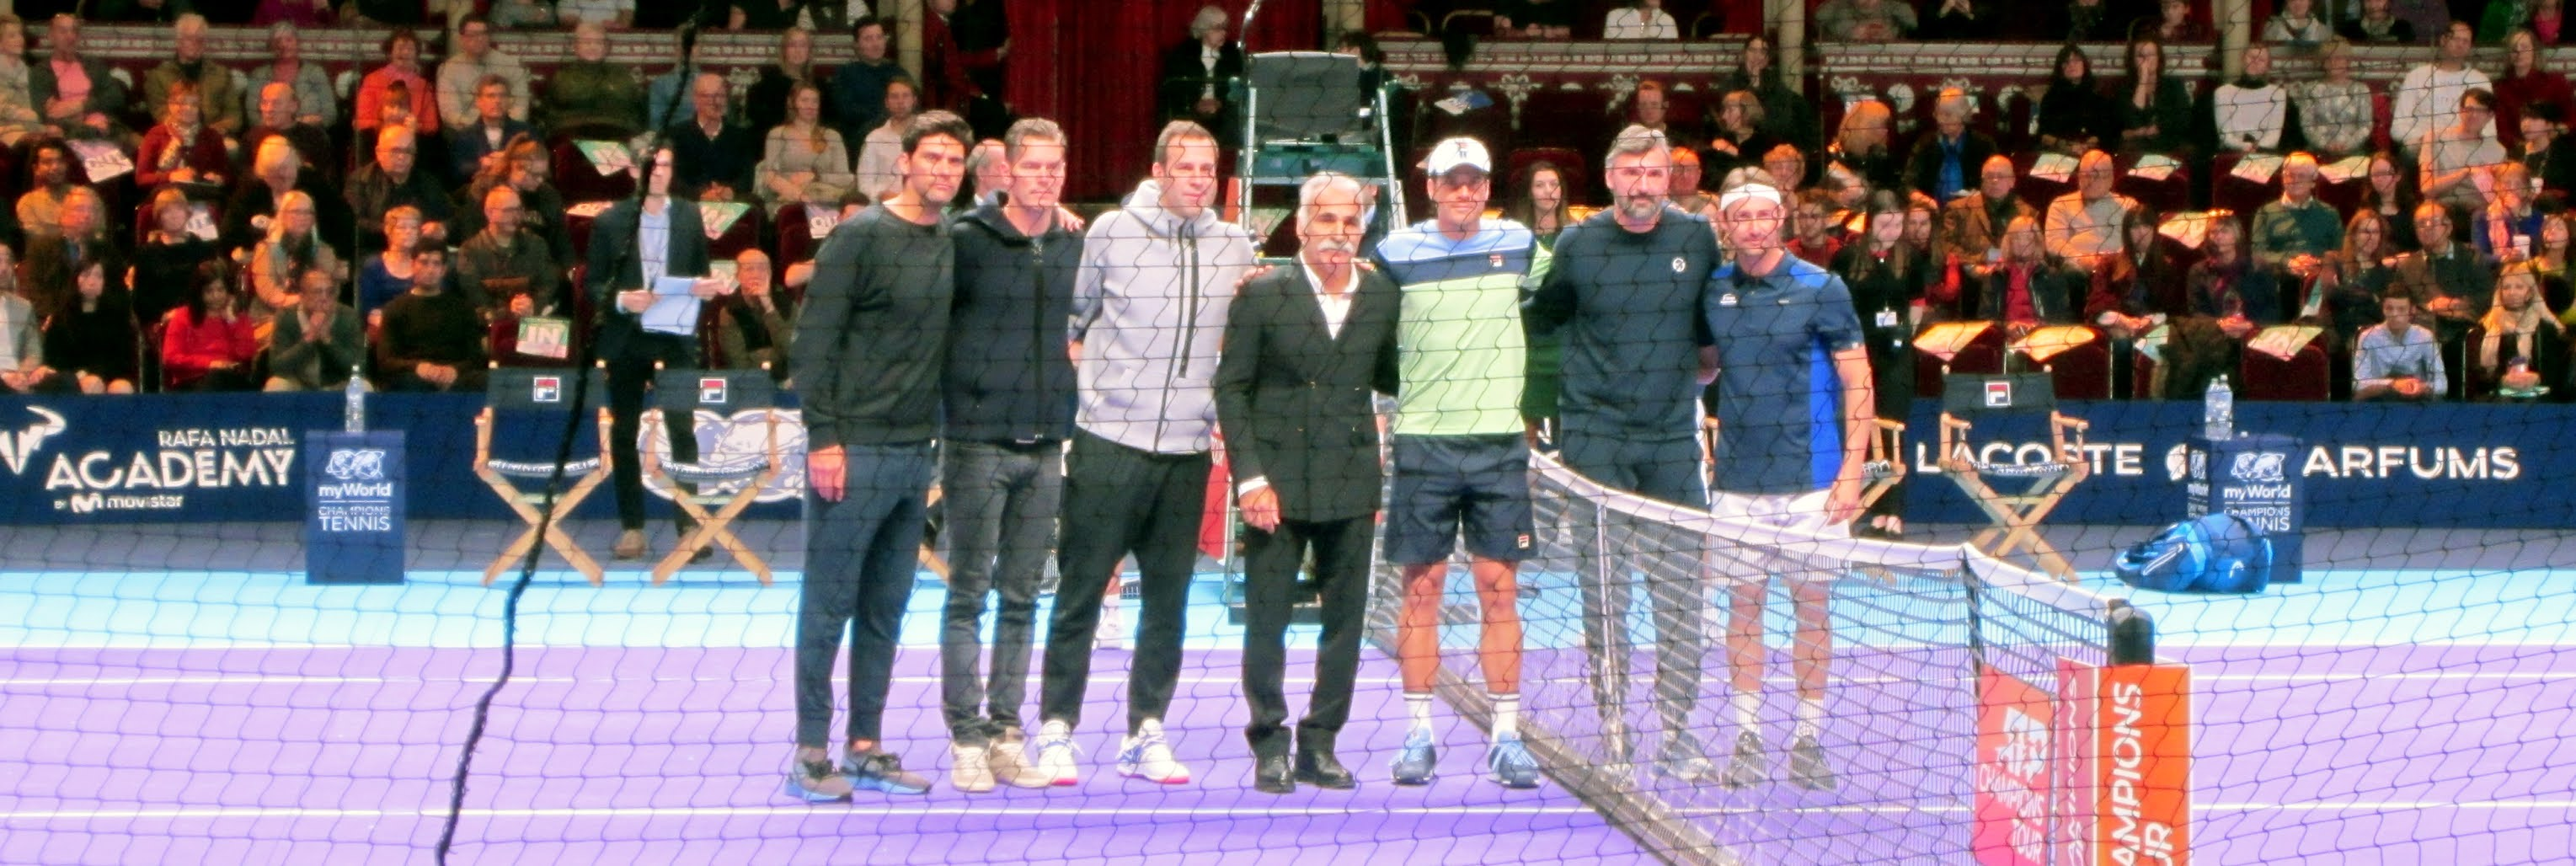 Mark Philippoussis, Greg Rusedski, Mansour Bahrami, Tommy Haas, Goran Ivanisevic and Juan-Carlos Ferrero pose for a photo before the myWorld Champions Tennis event at Royal Albert Hall